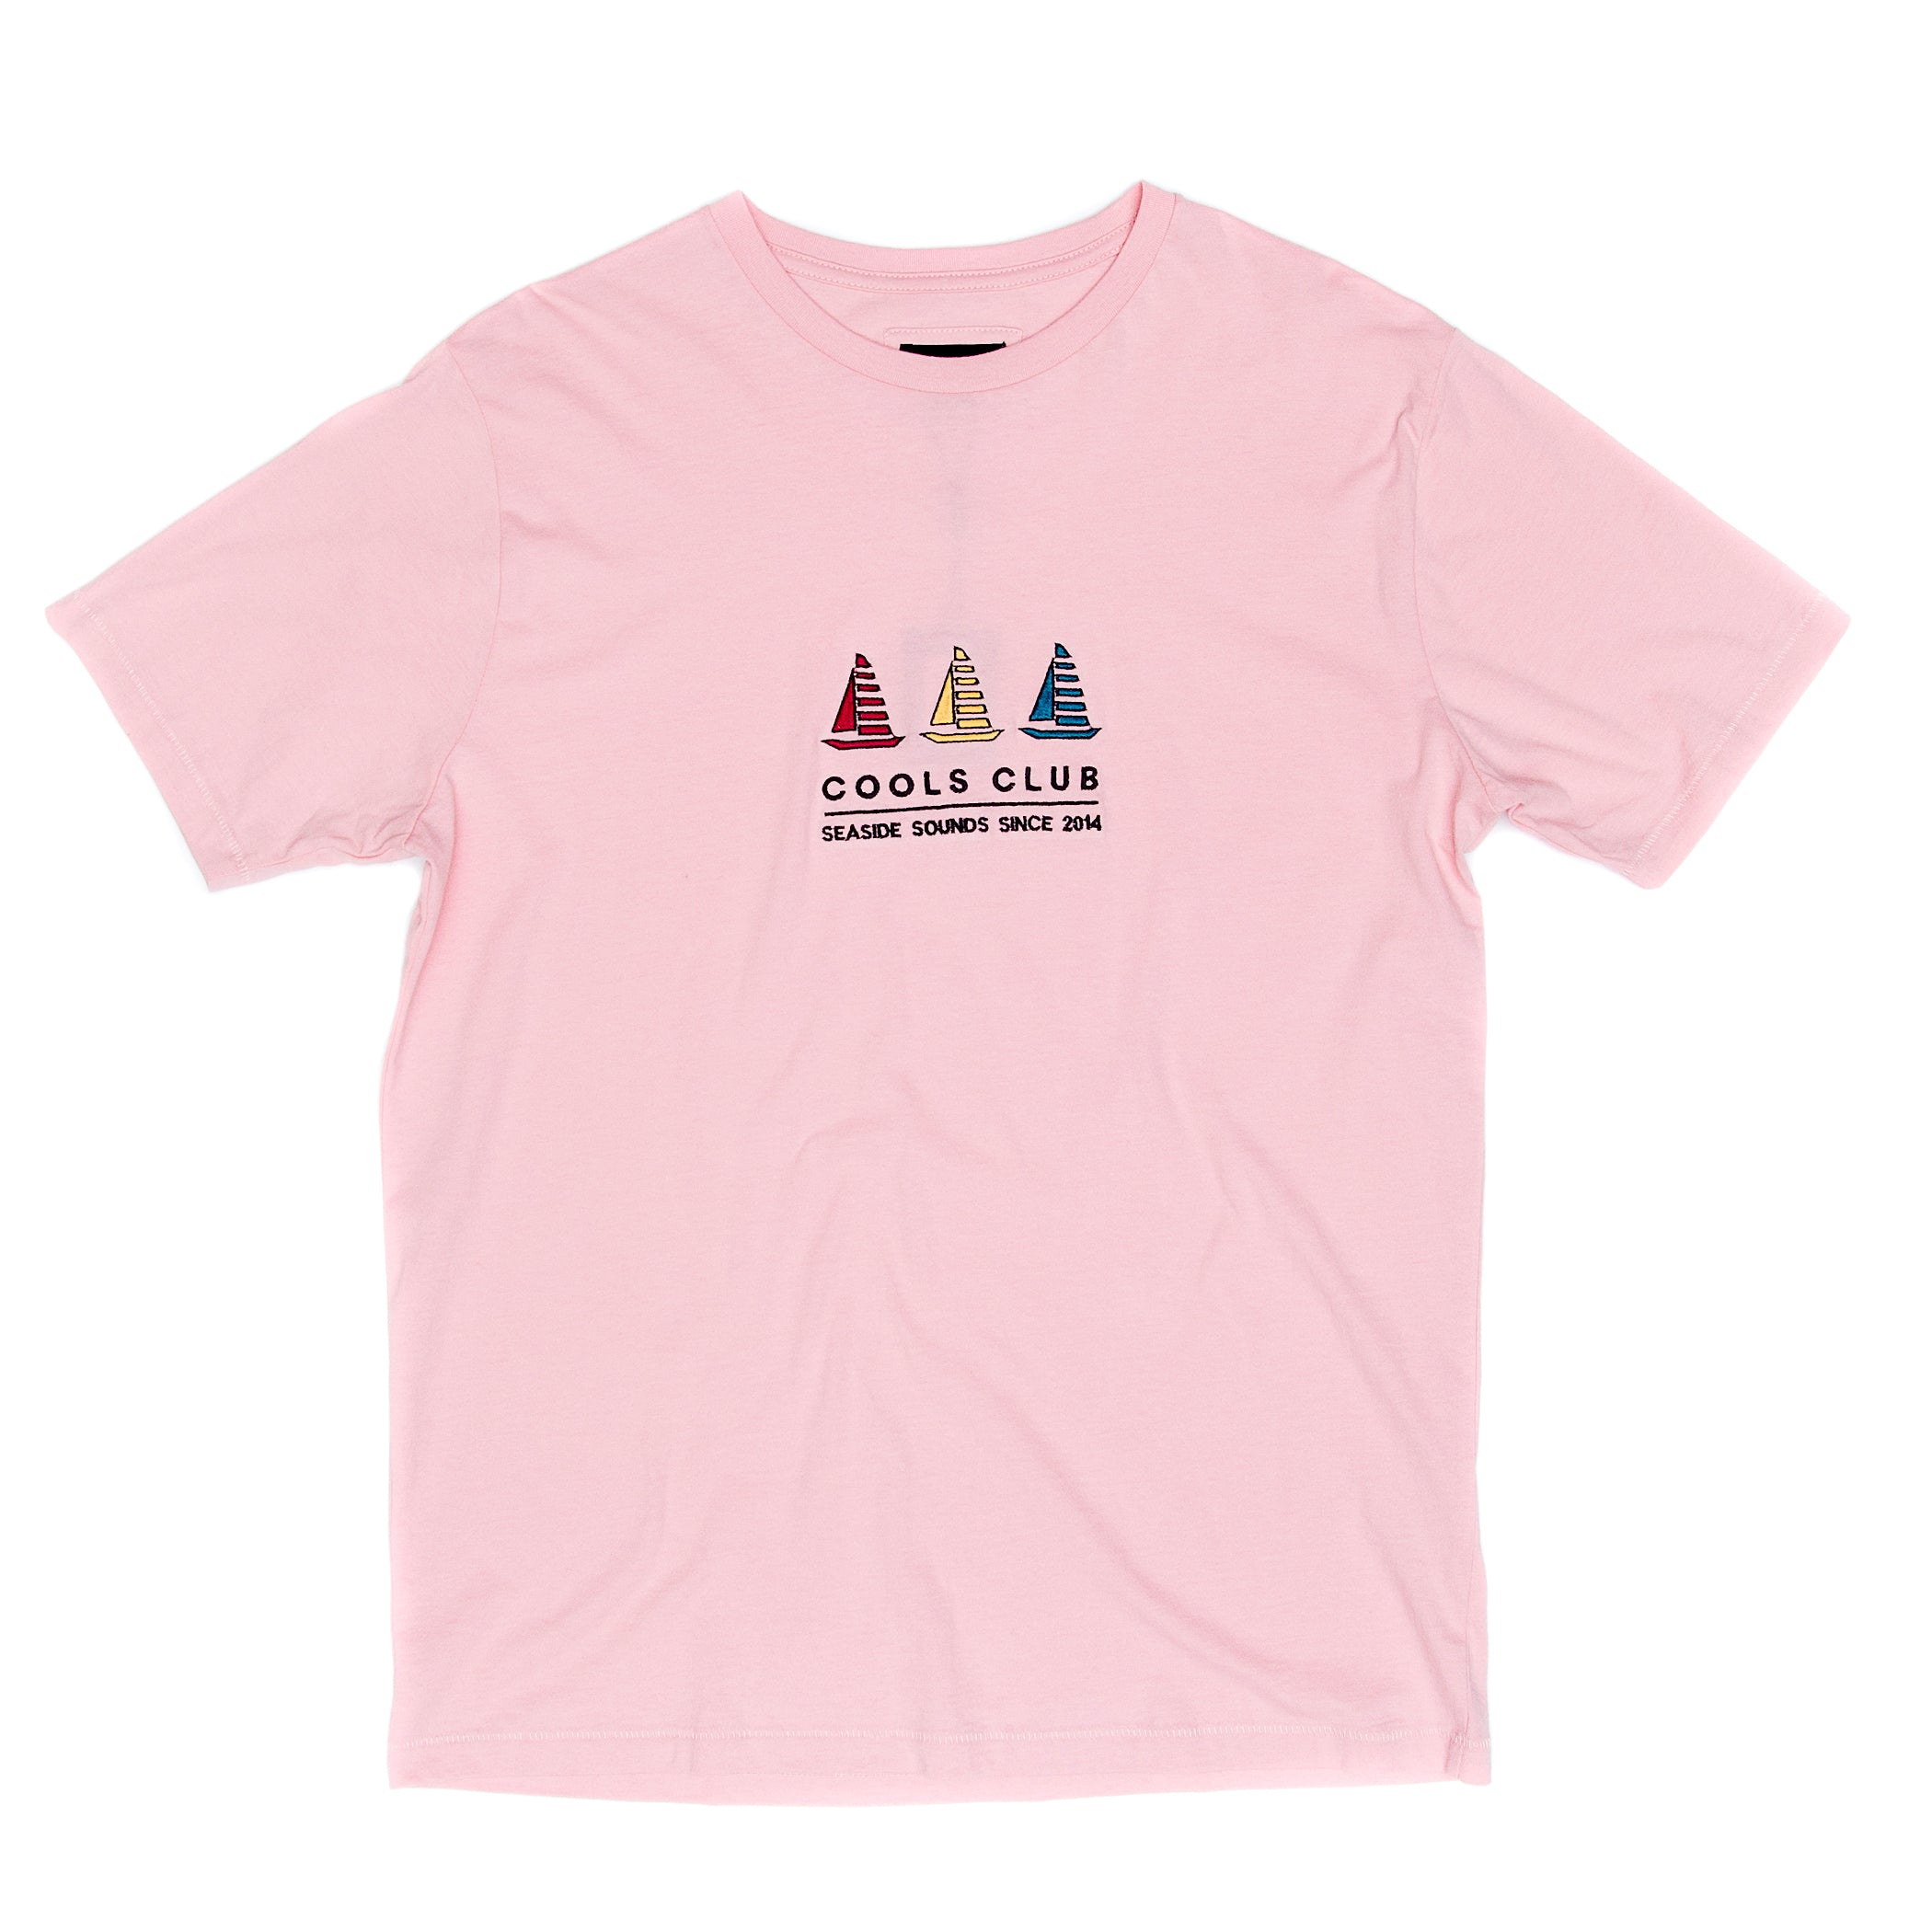 Barney Cools - Cools Club T-Shirt